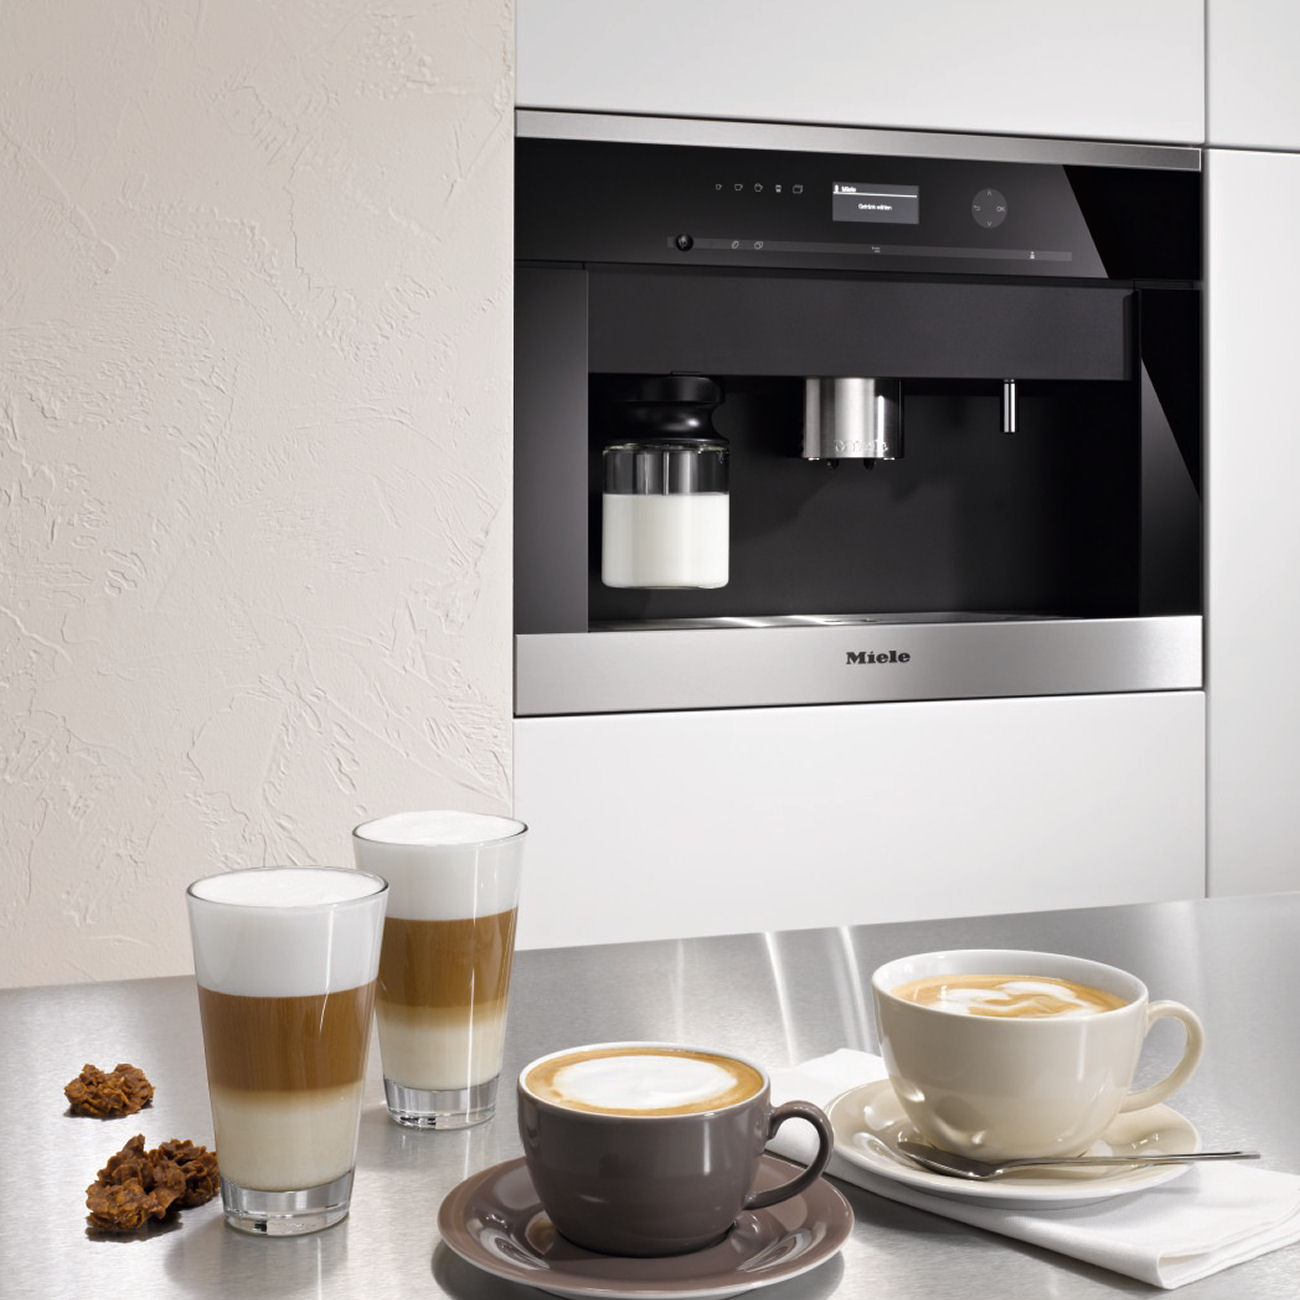 Kitchen Products Stores: Miele Kitchen Appliances